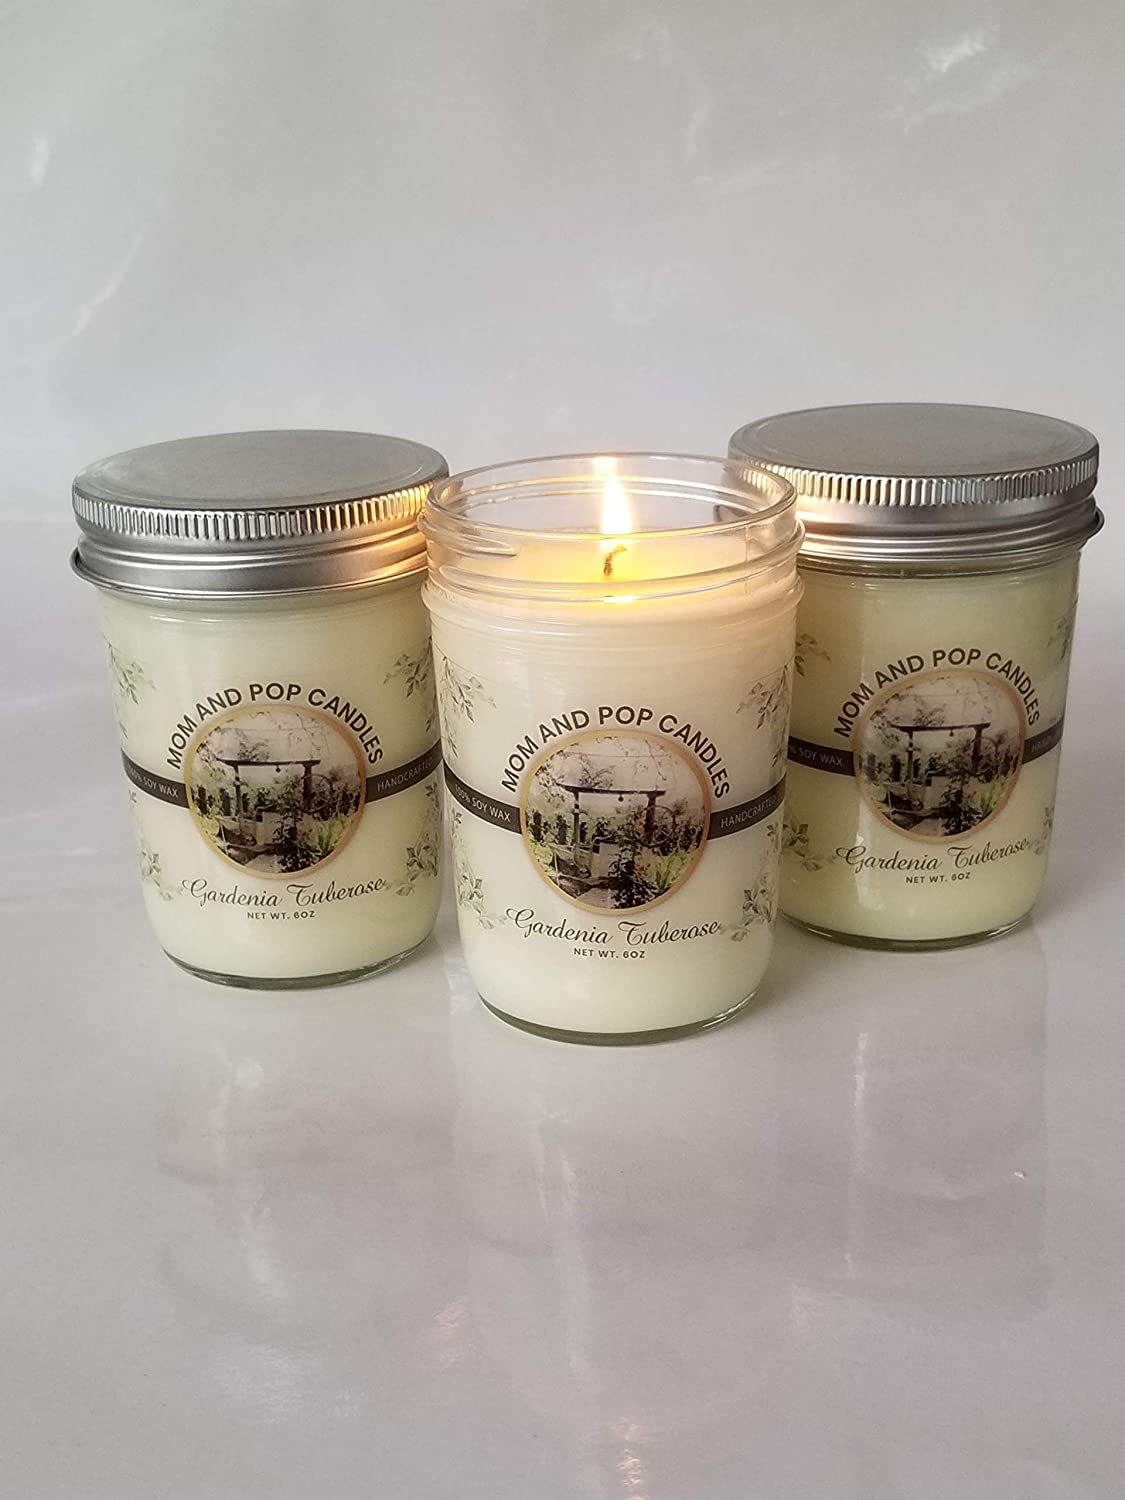 6 oz Mom and Pop Candles- Fresh Cut Gardenia Tuberose Scent Hand Poured and 100/% Natural Toxin Free Soy Candle